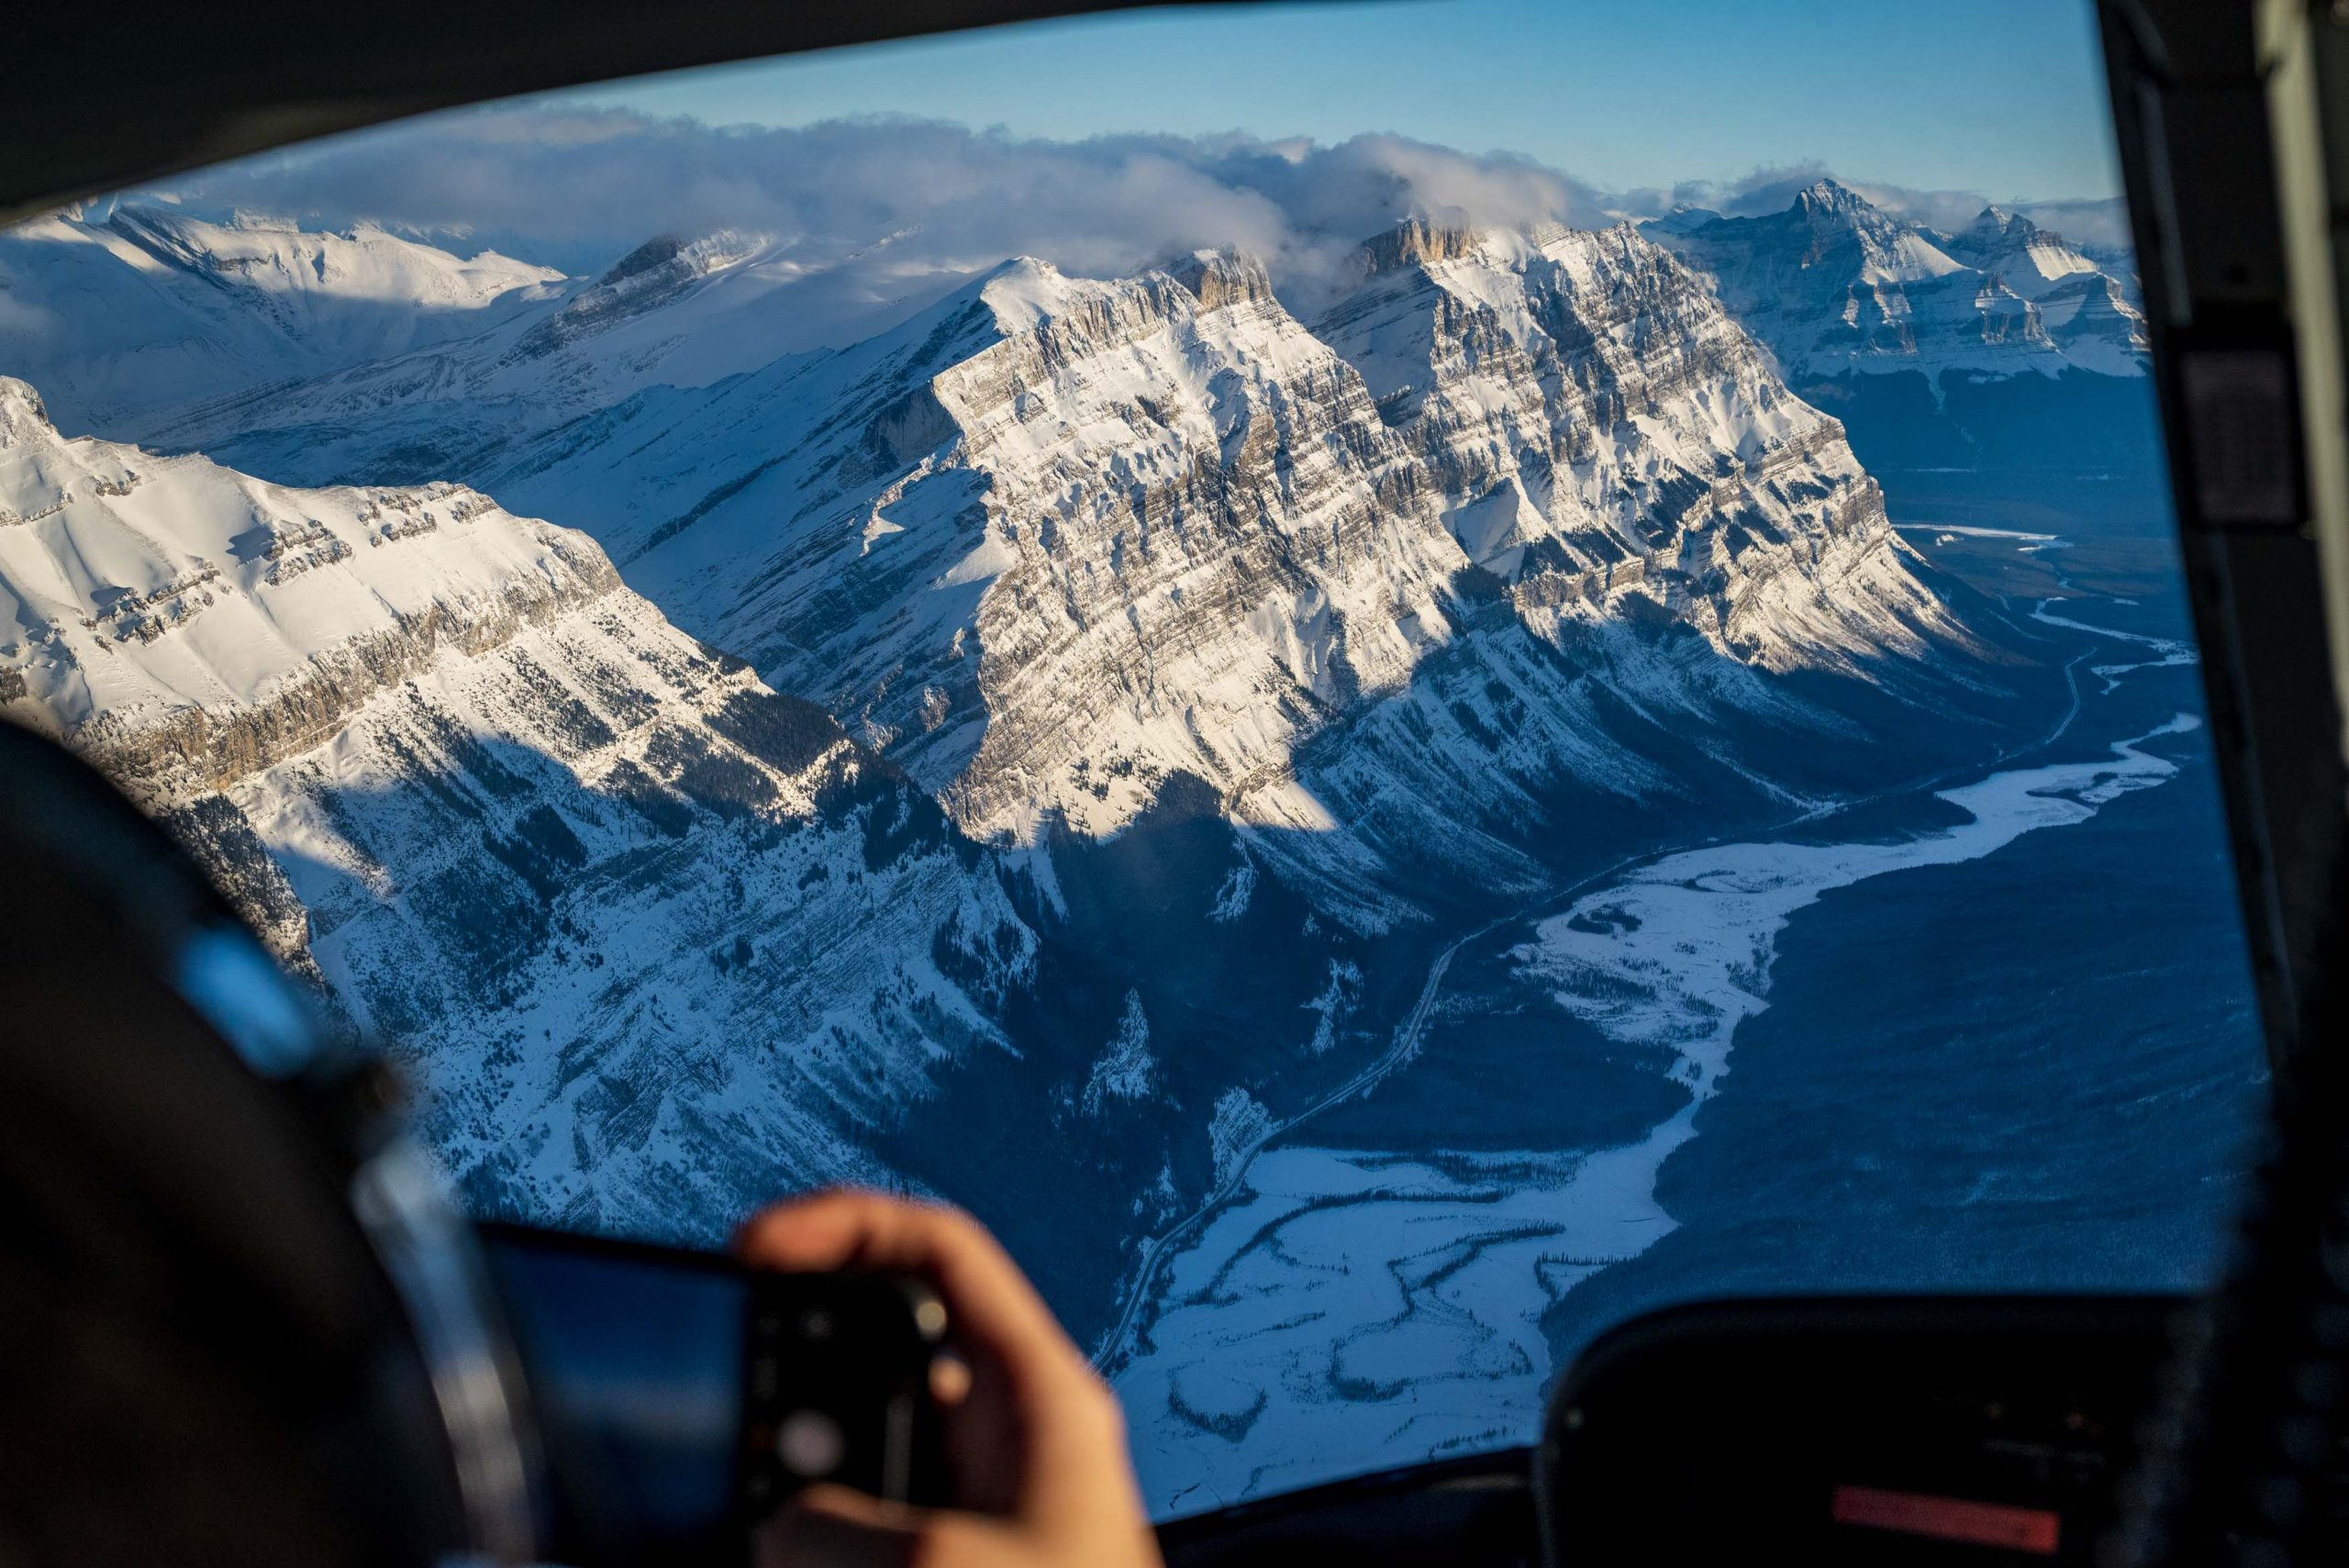 Abraham Lake Heli Tours